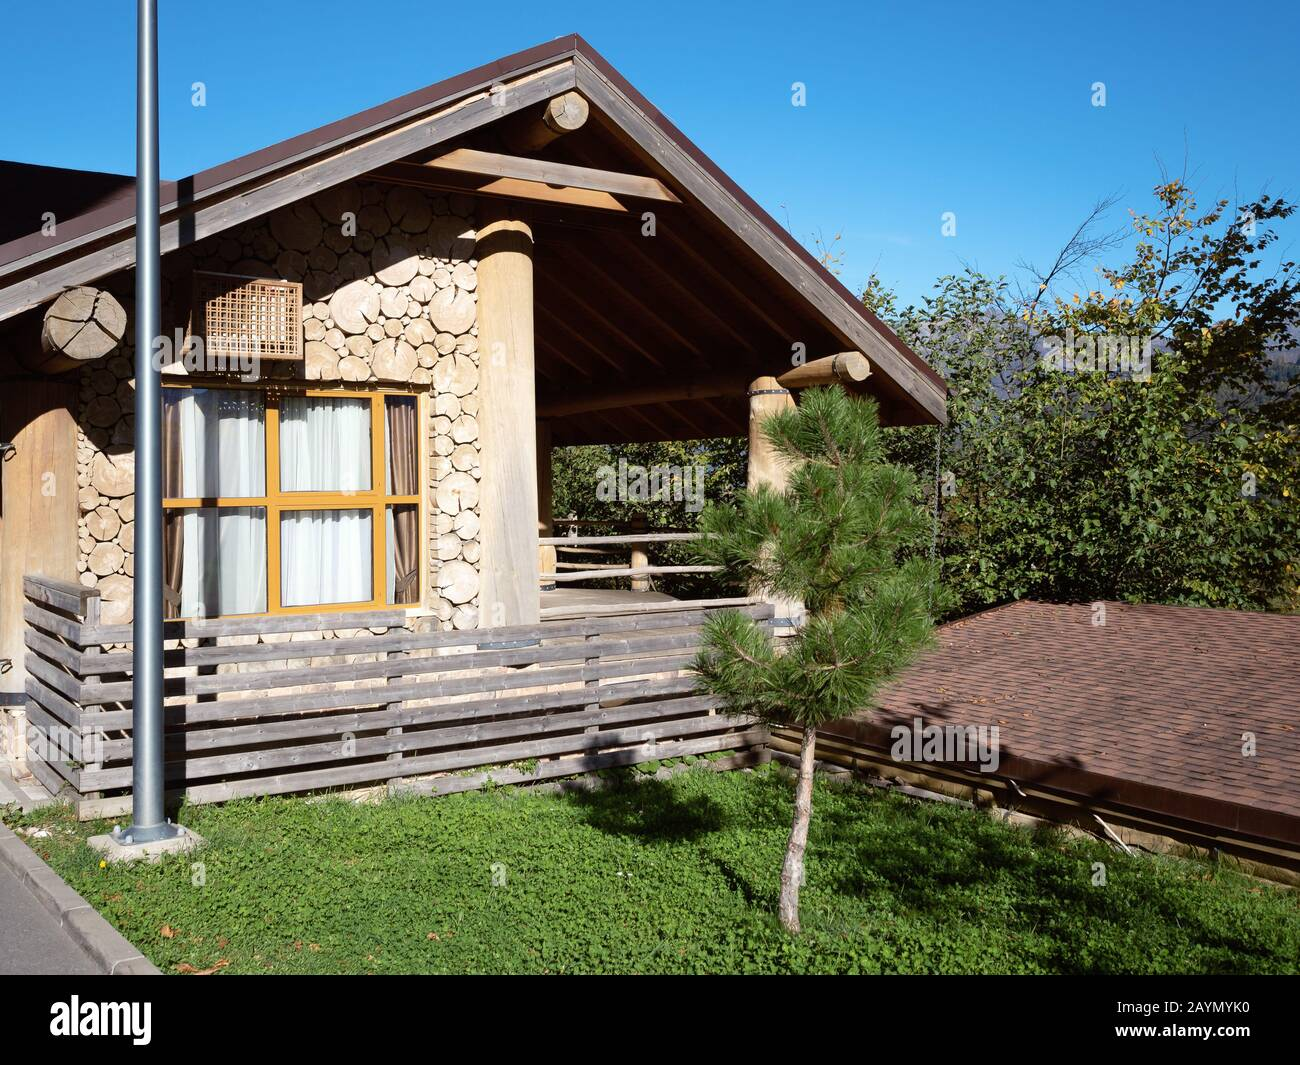 Small Wooden House With An Outdoor Terrace And Green Lawn In Front Of It Stock Photo Alamy